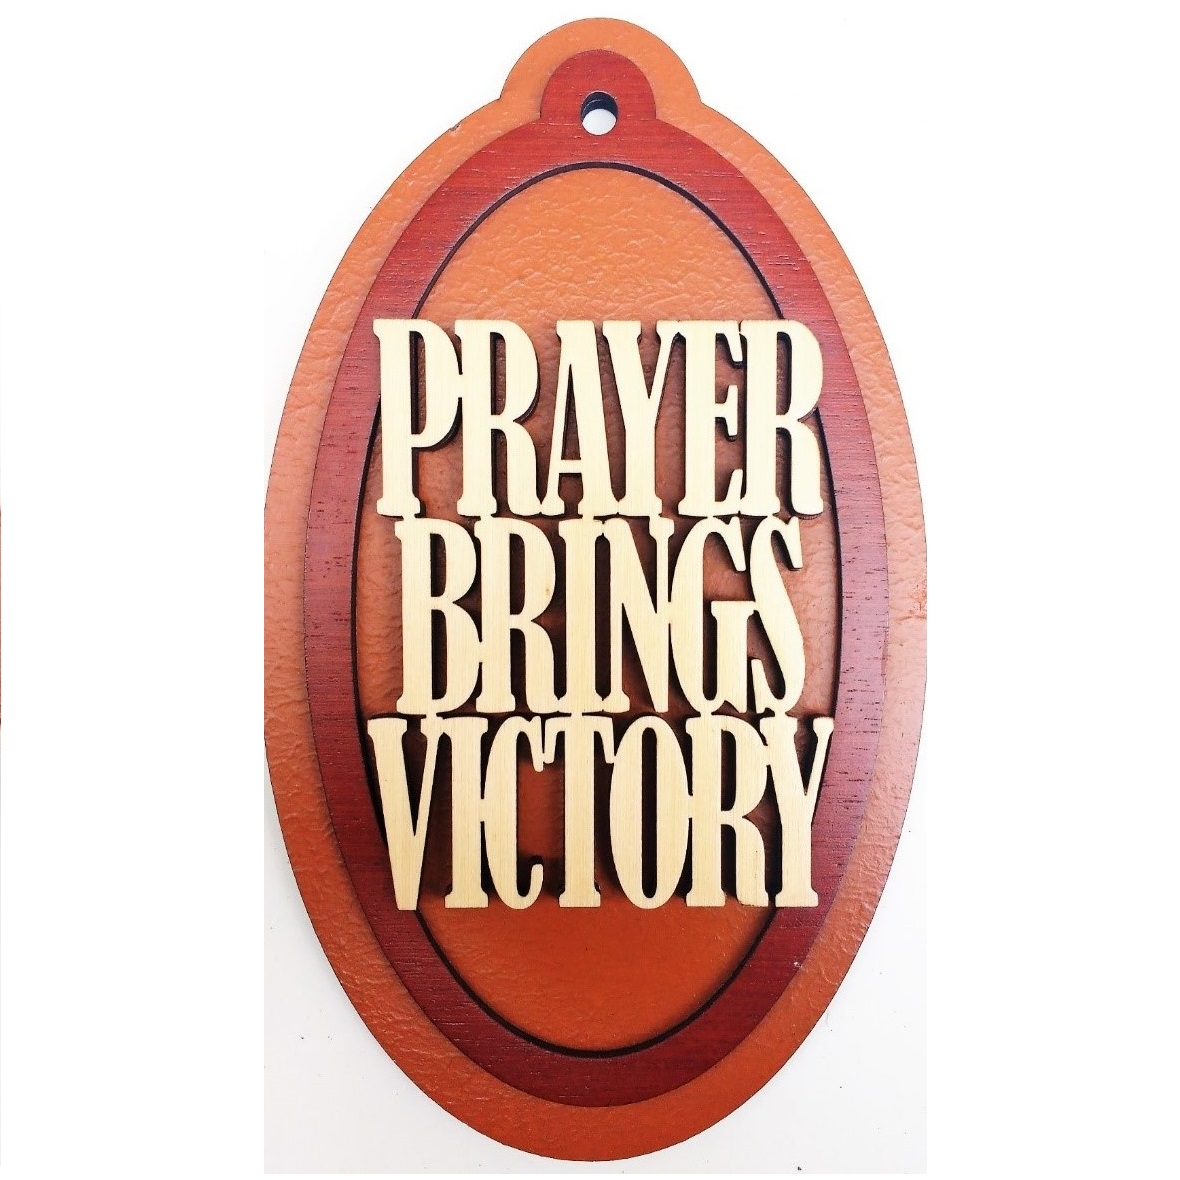 PRAYER BRINGS VICTORY